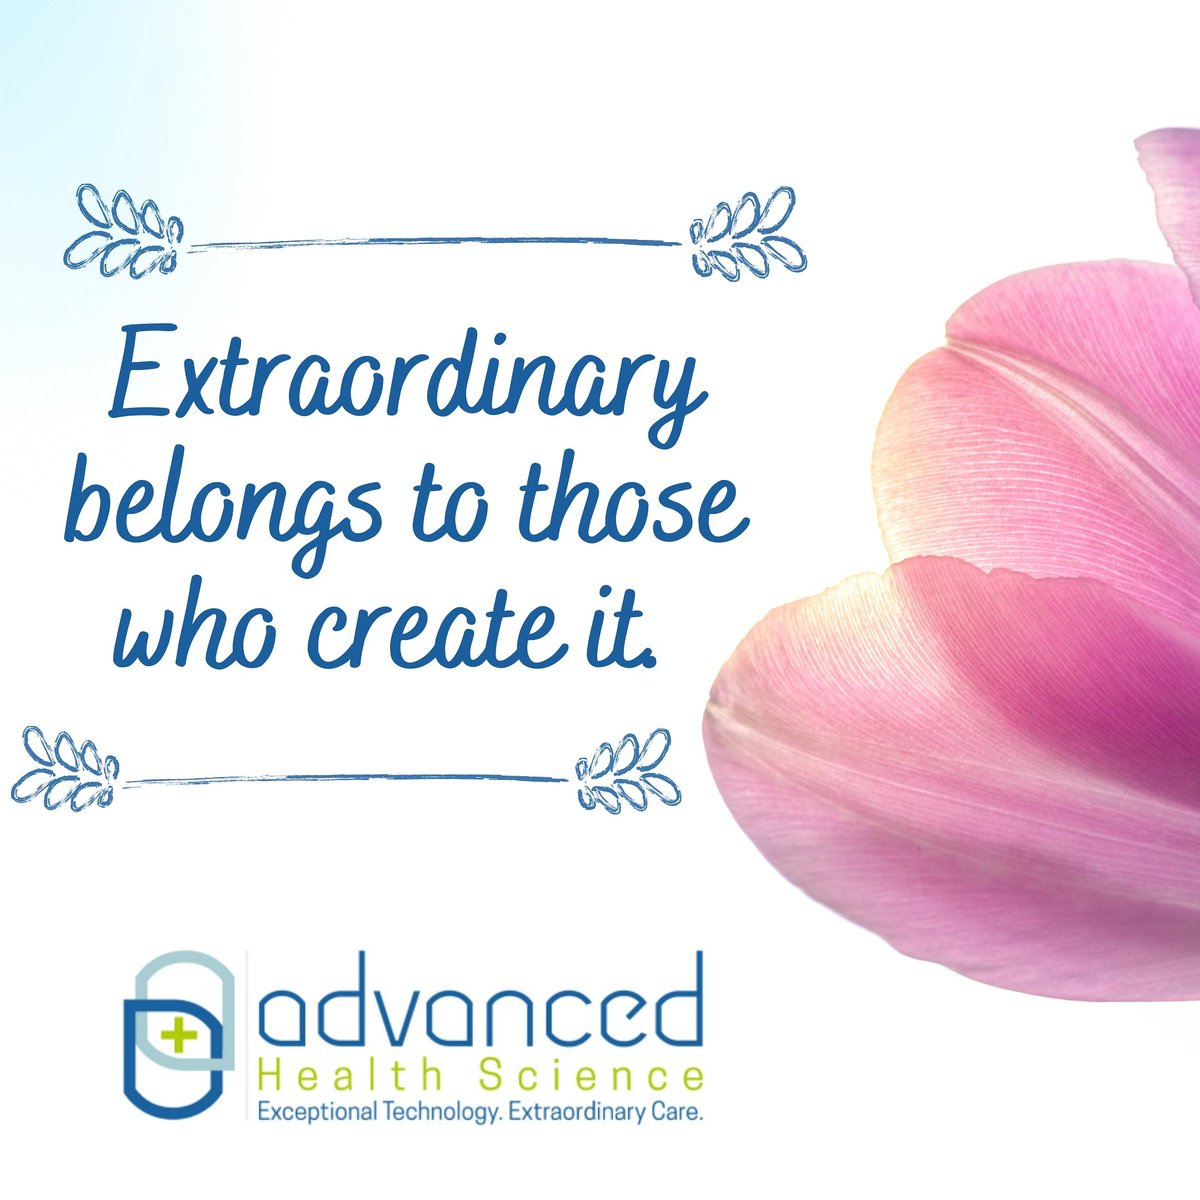 We hope you are all having a restful and extraordinary weekend! 😊  #AdvancedHealthScience #ExceptionalTechnology #ExtraordinaryCare #AHS #StayHealthy #StaySafe #SaturdayVibes https://t.co/yygcrwW4Do